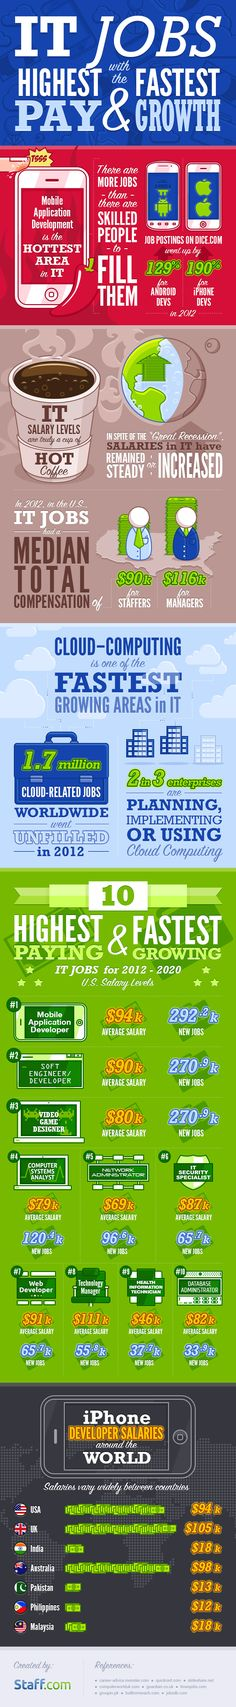 What Are The IT Jobs With The Highest Pay And Fastest Growth? #infographic